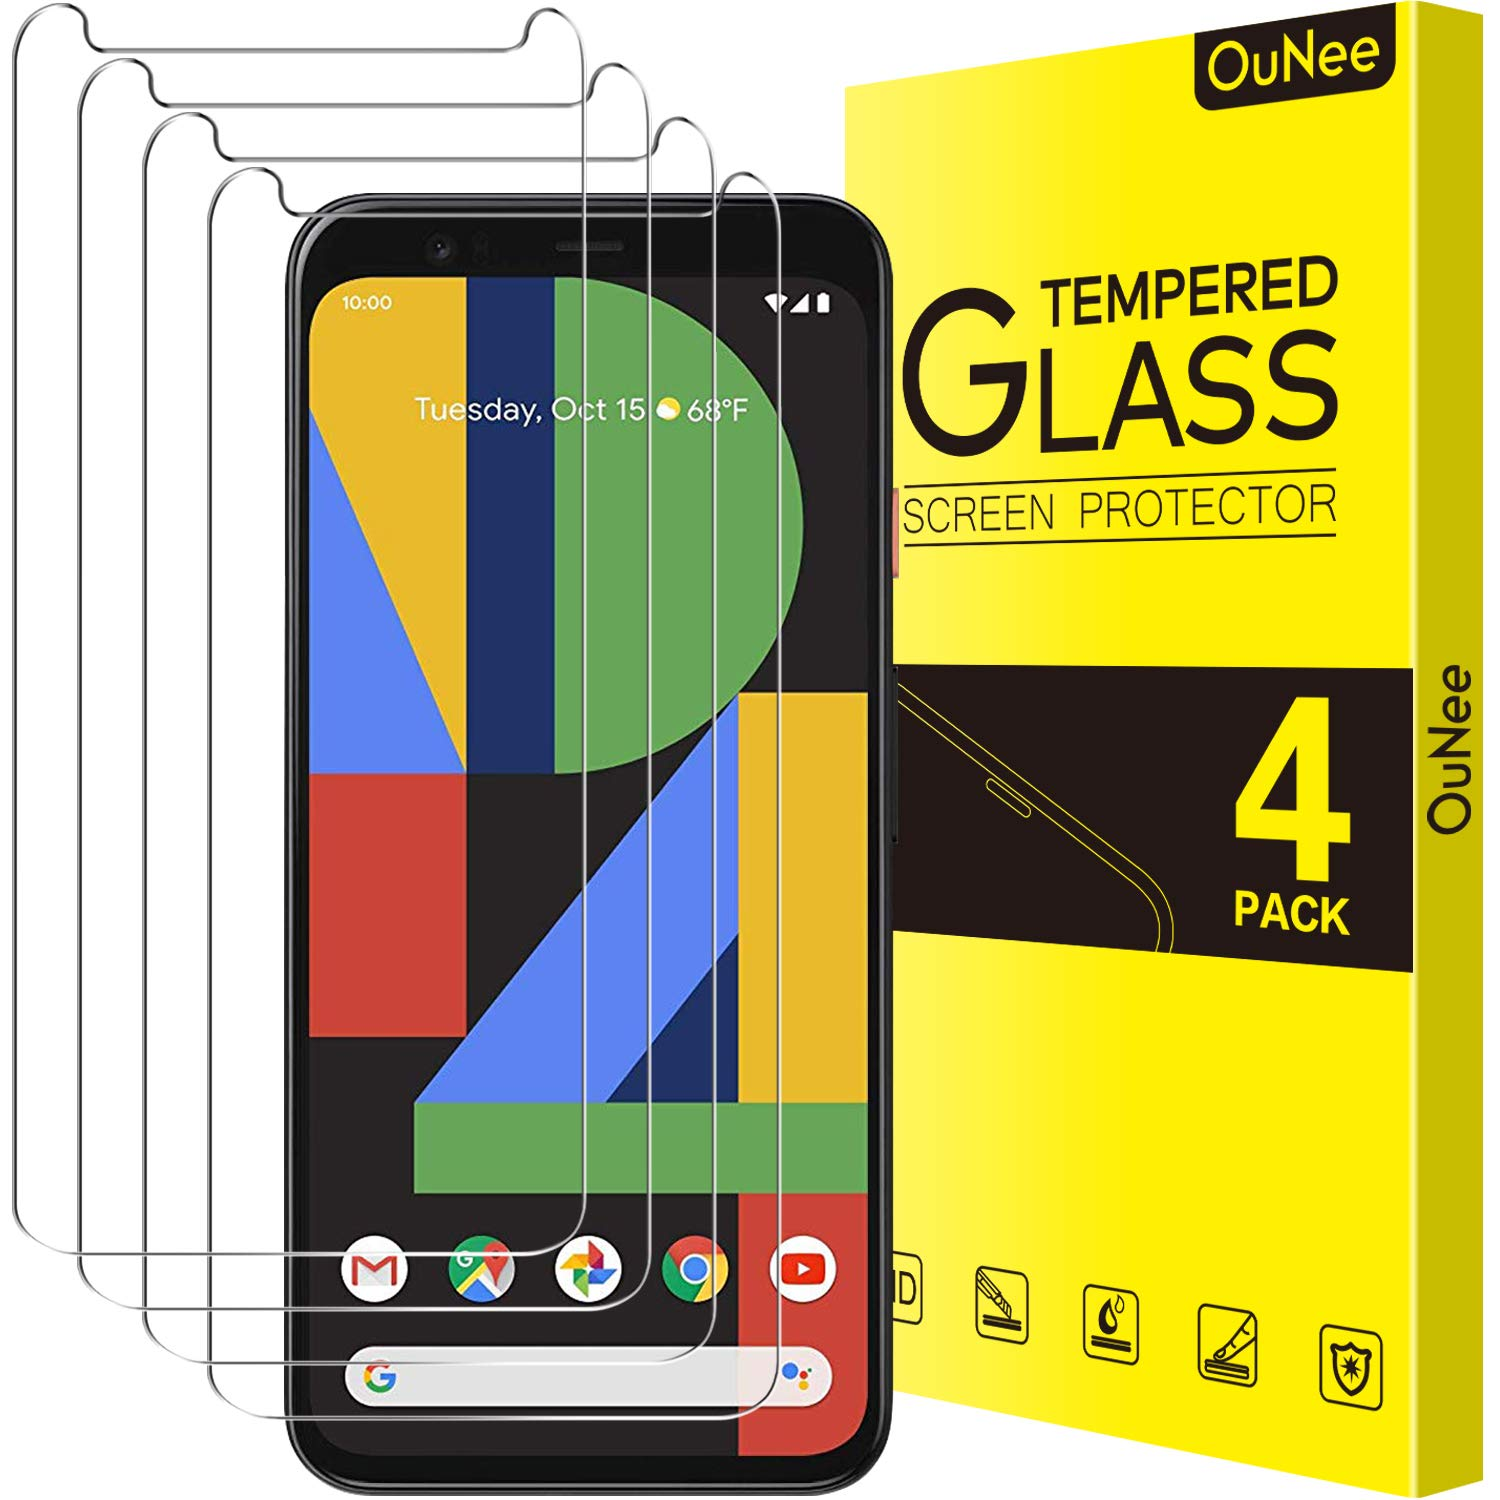 [4 Pack] OuNee Google Pixel 4XL Screen Protector, Tempered Glass, 9H Hardness, HD Clear, Scratch Resistant, Case Friendly Screen Protectors for Pixel 4 XL (2019)